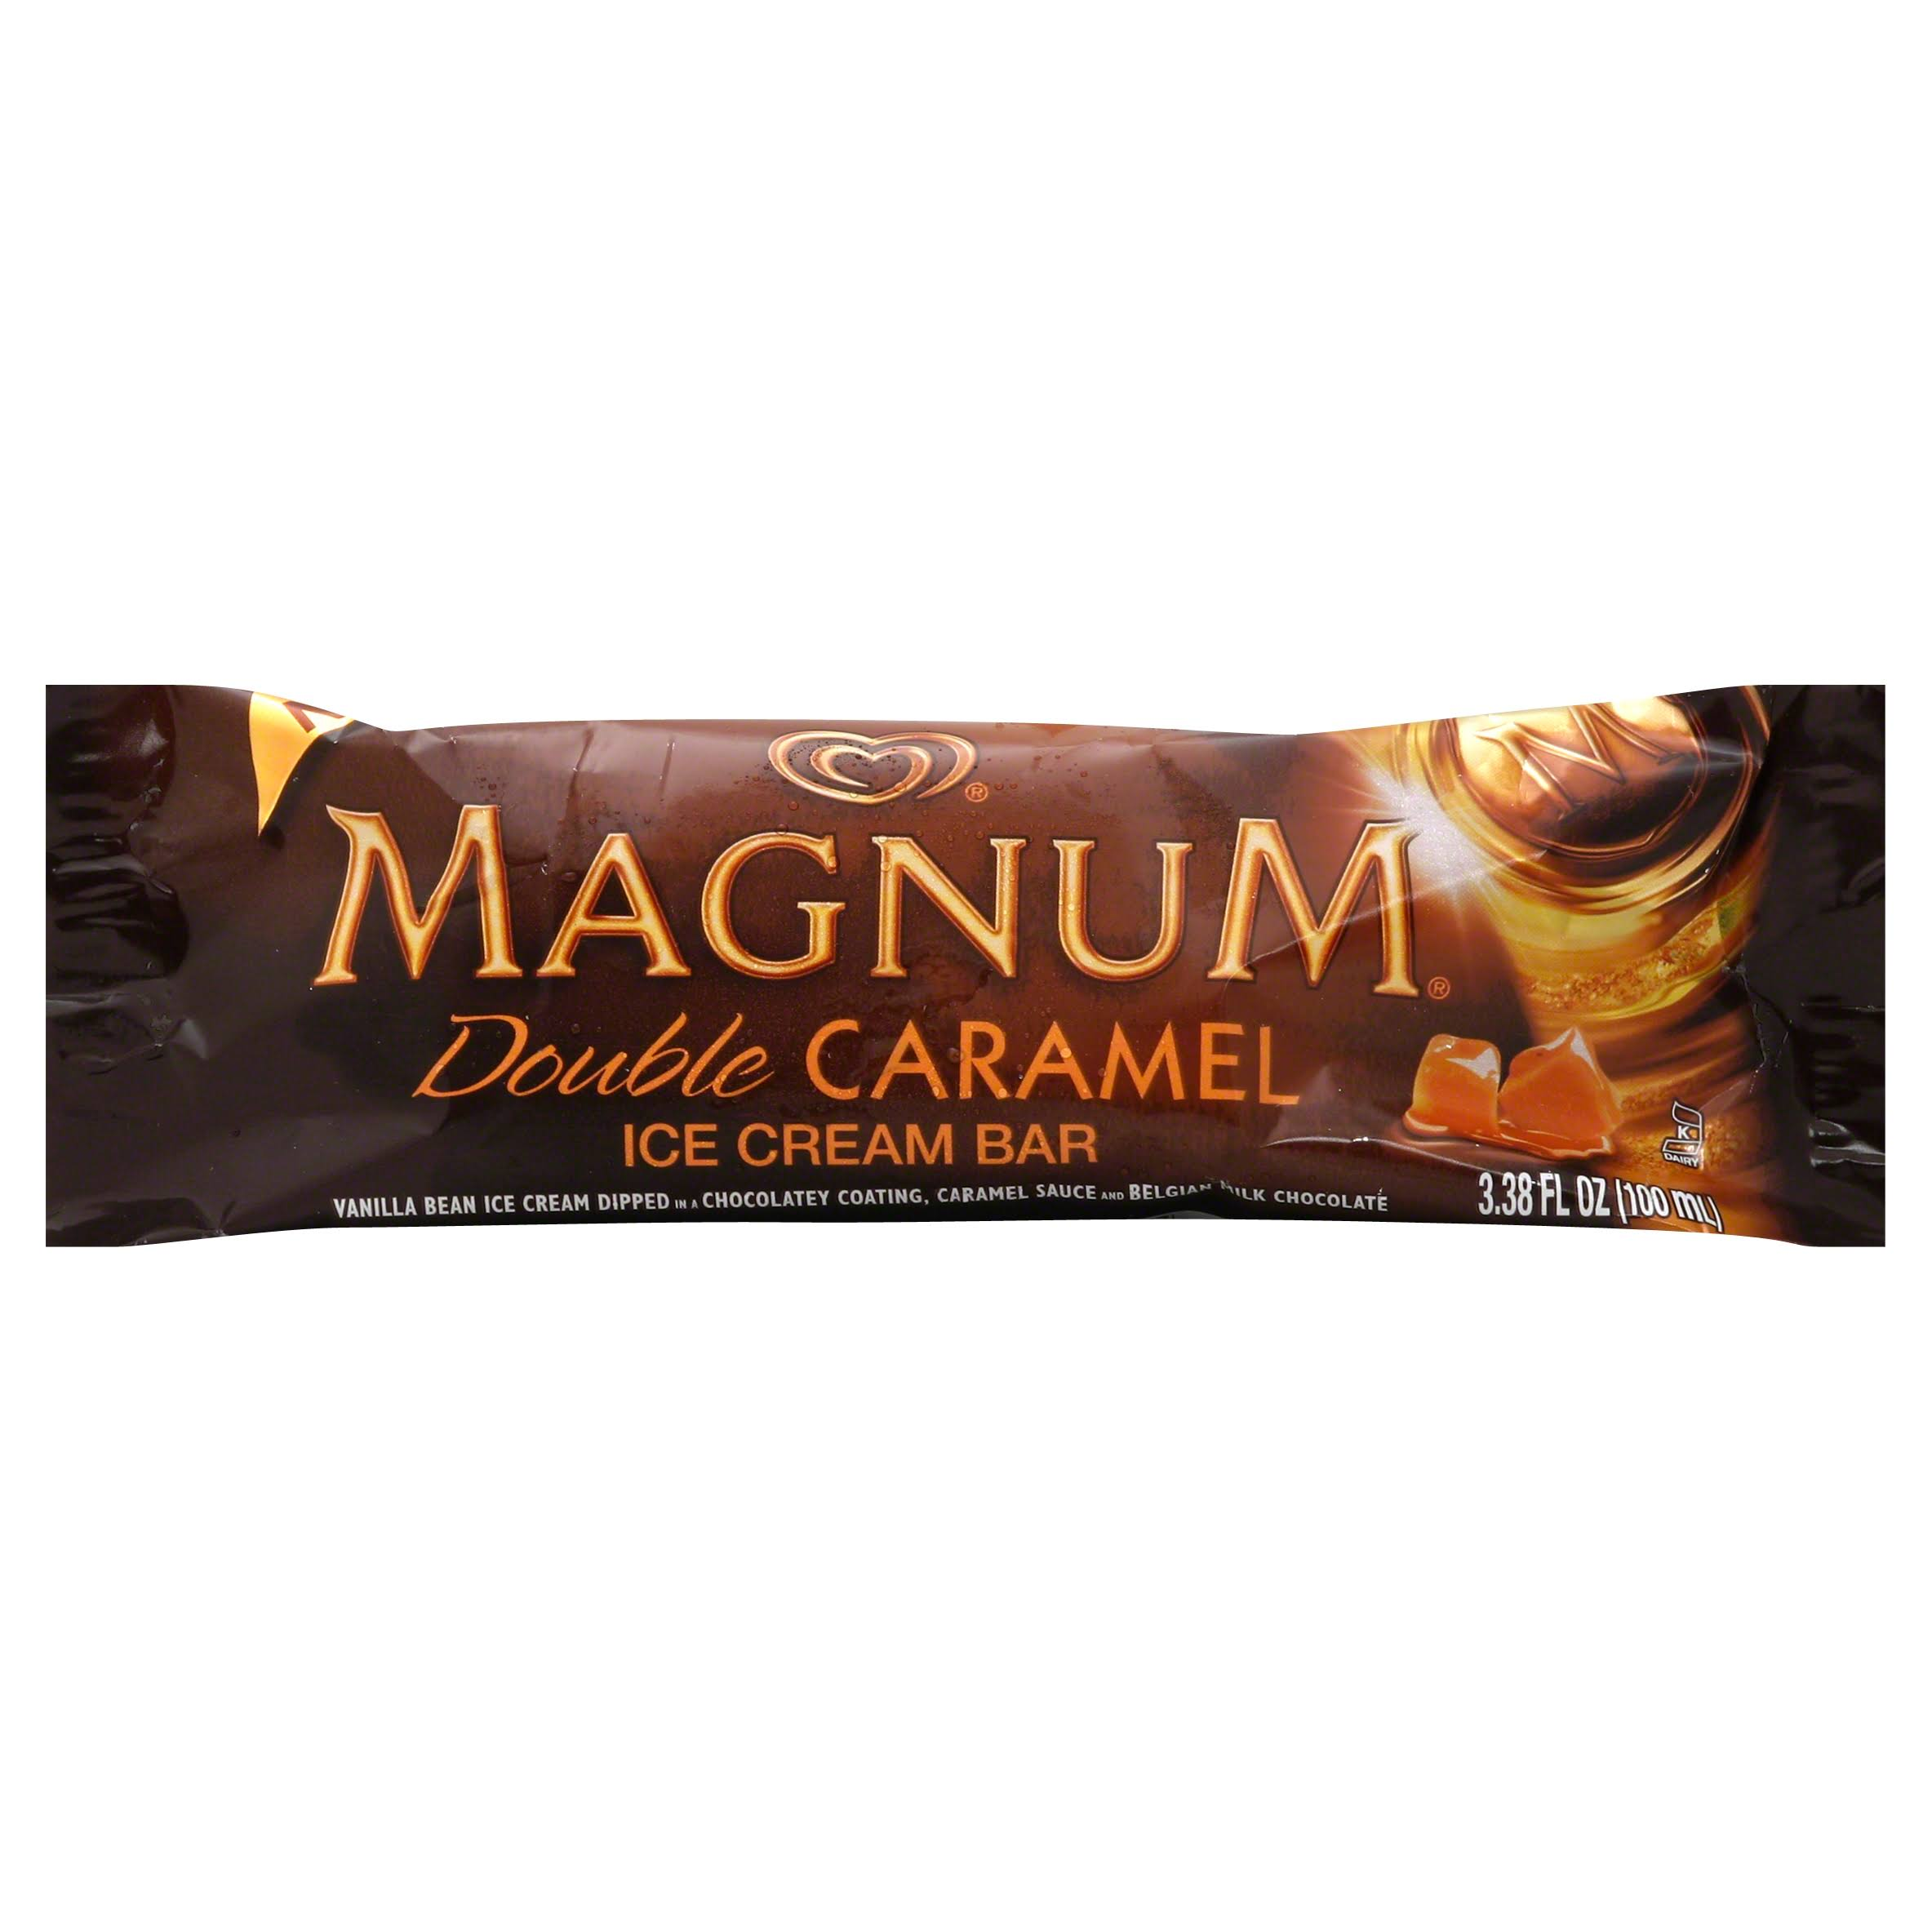 Magnum Ice Cream Bar - Double Caramel